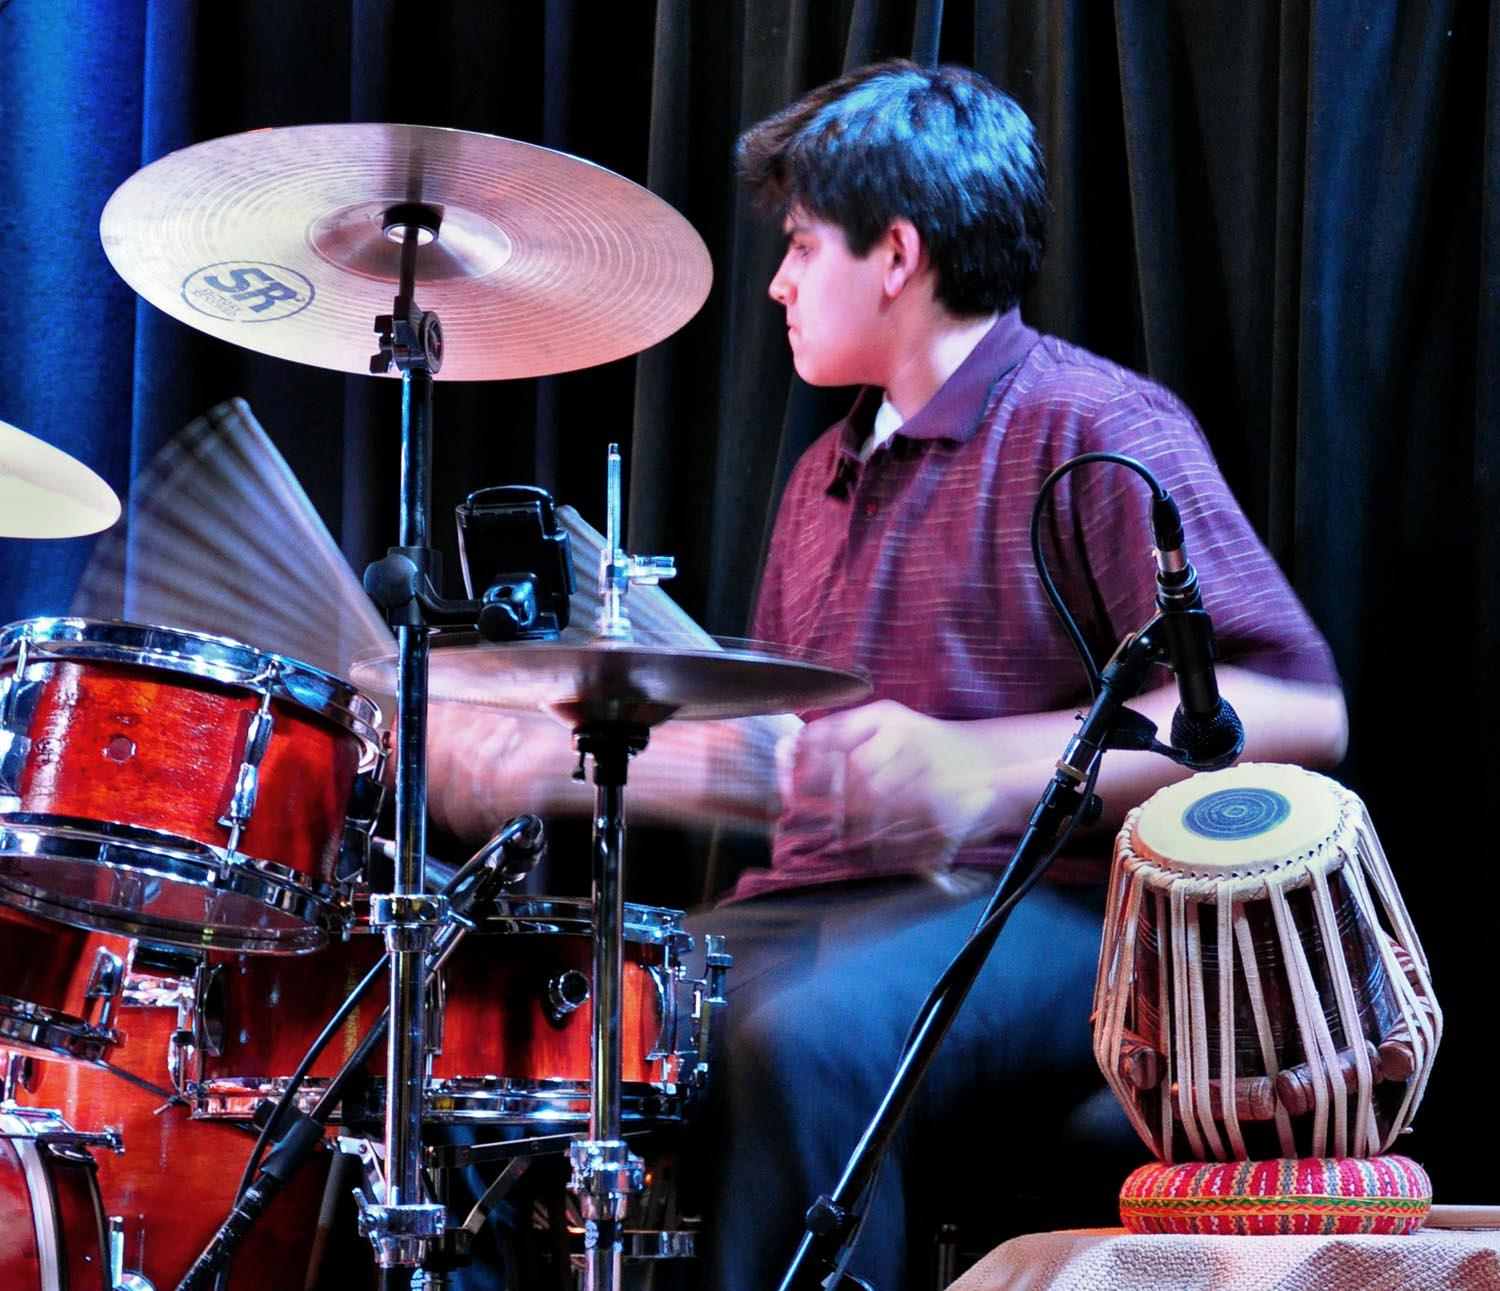 Keshav Batish on drum set - Sitar Power live at the Kuumbwa Jazz Center, Santa Cruz. All rights reserved. �12 Ashwin Batish. Copyrighted image. Photographer Chris Bratt